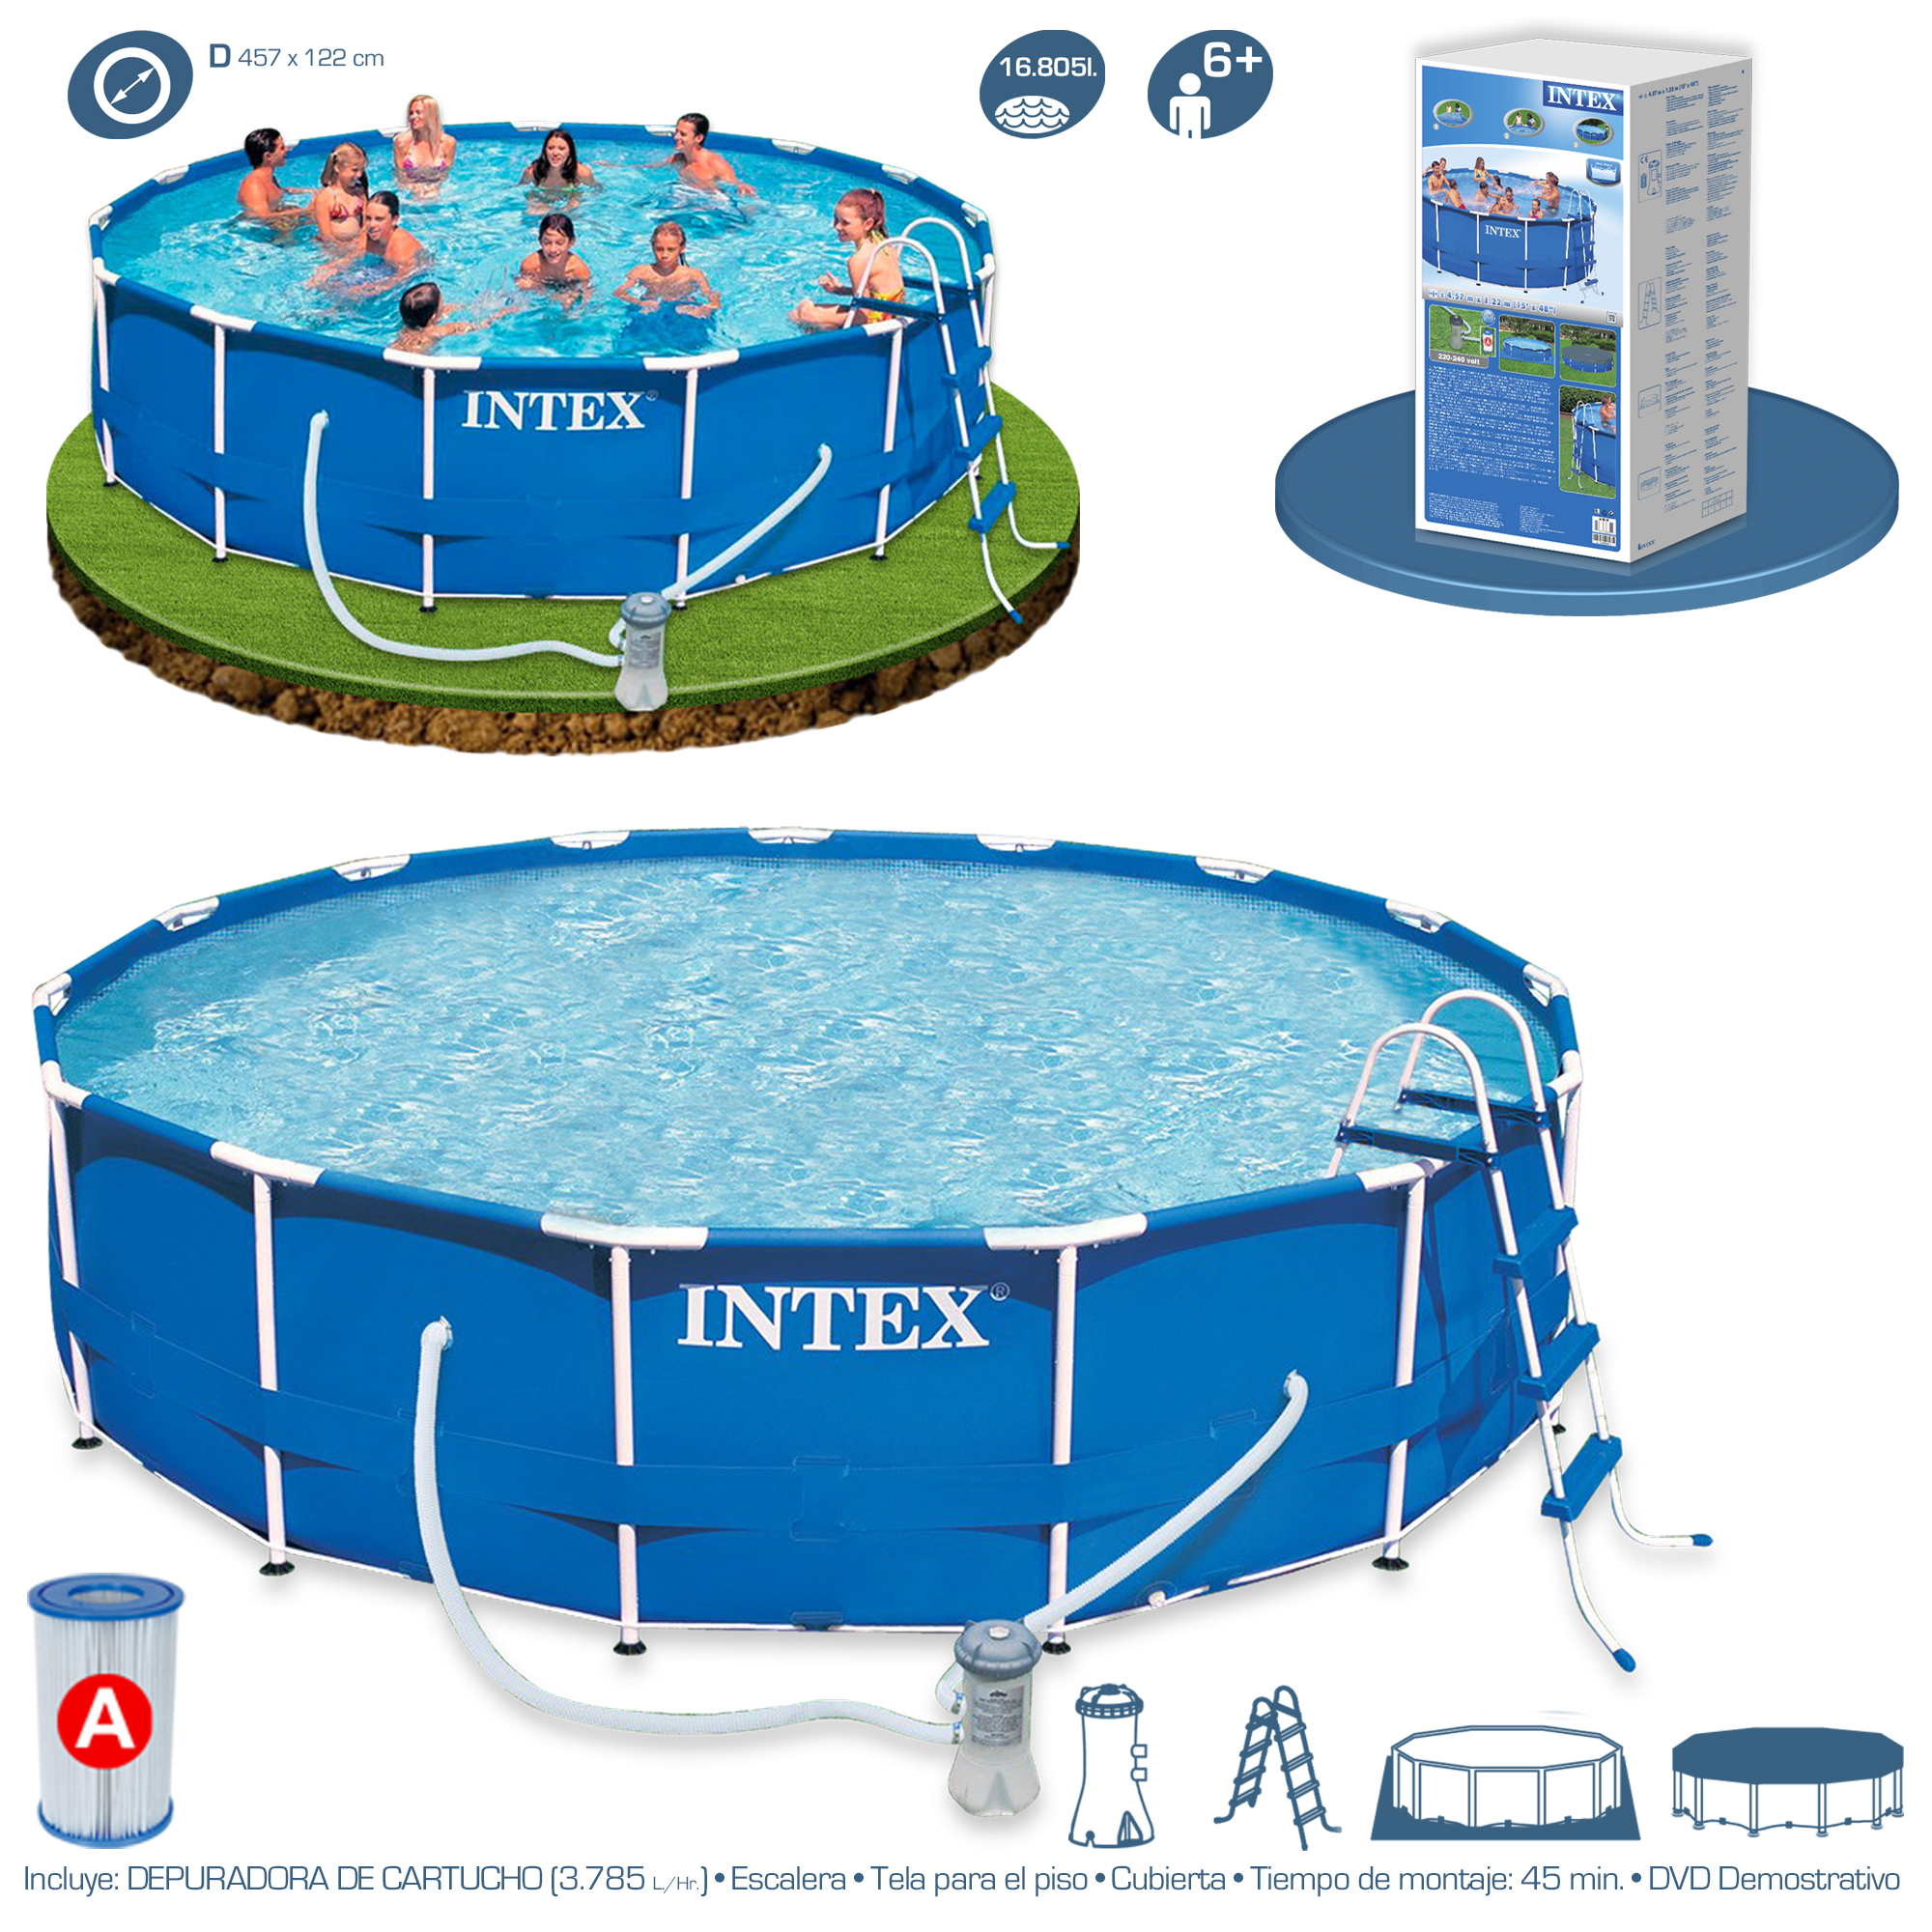 Piscina intex metal frame 457x122 28236 piscinas for Intex piscine catalogo